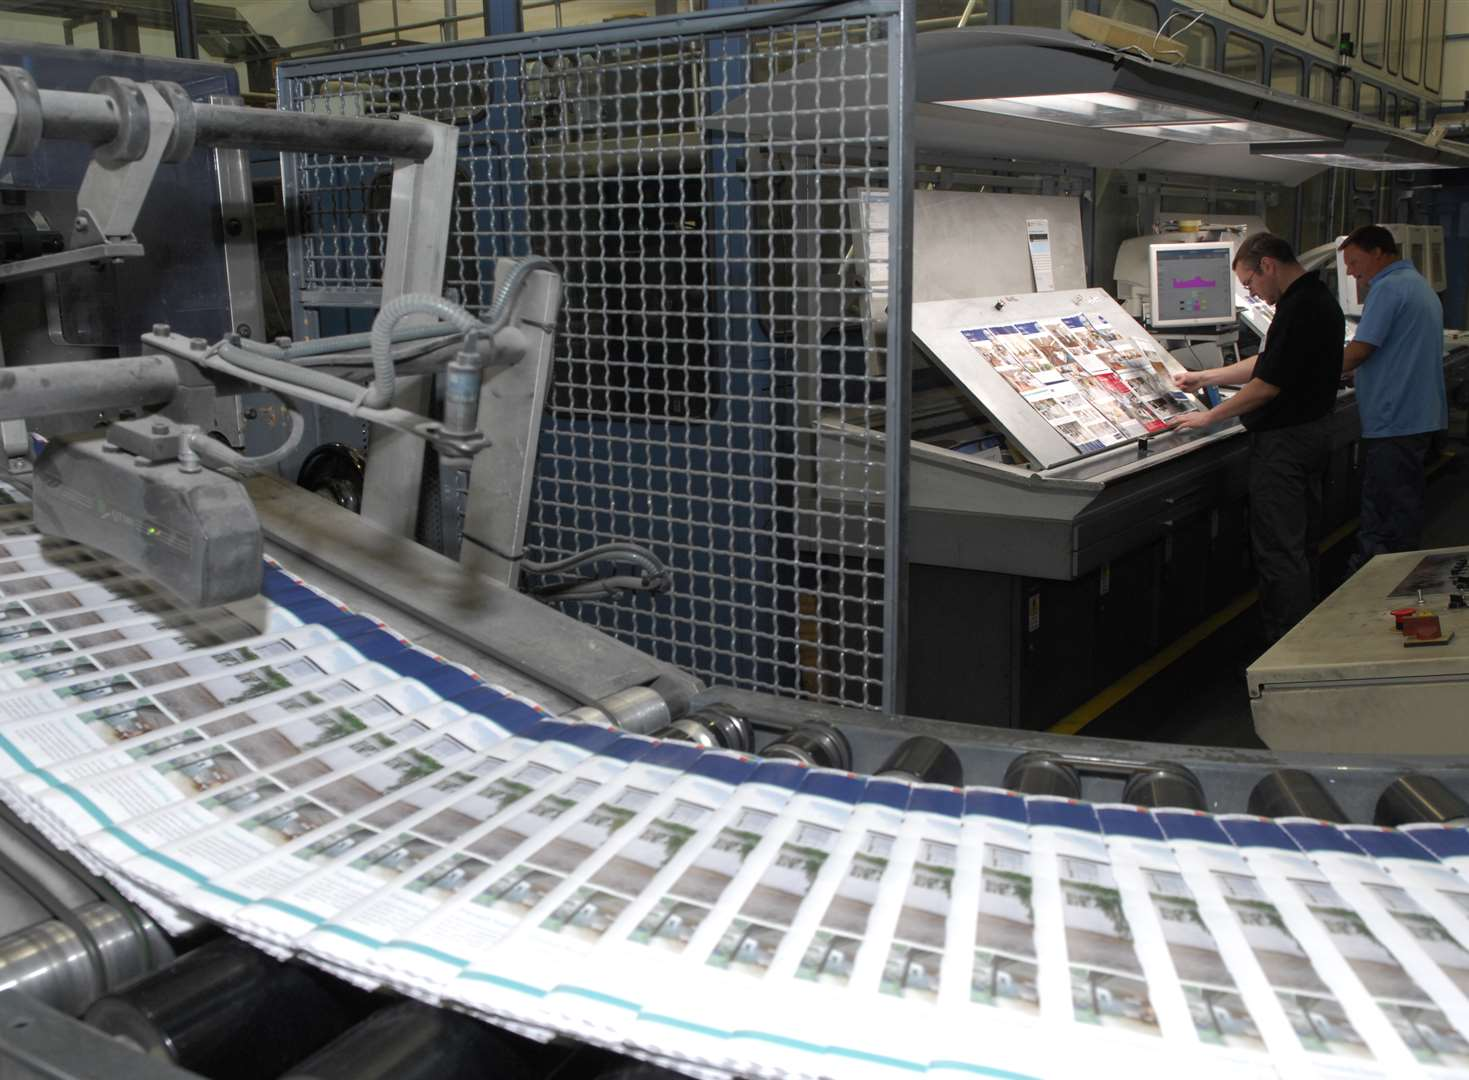 Rescued print firm 'has potential to grow back'